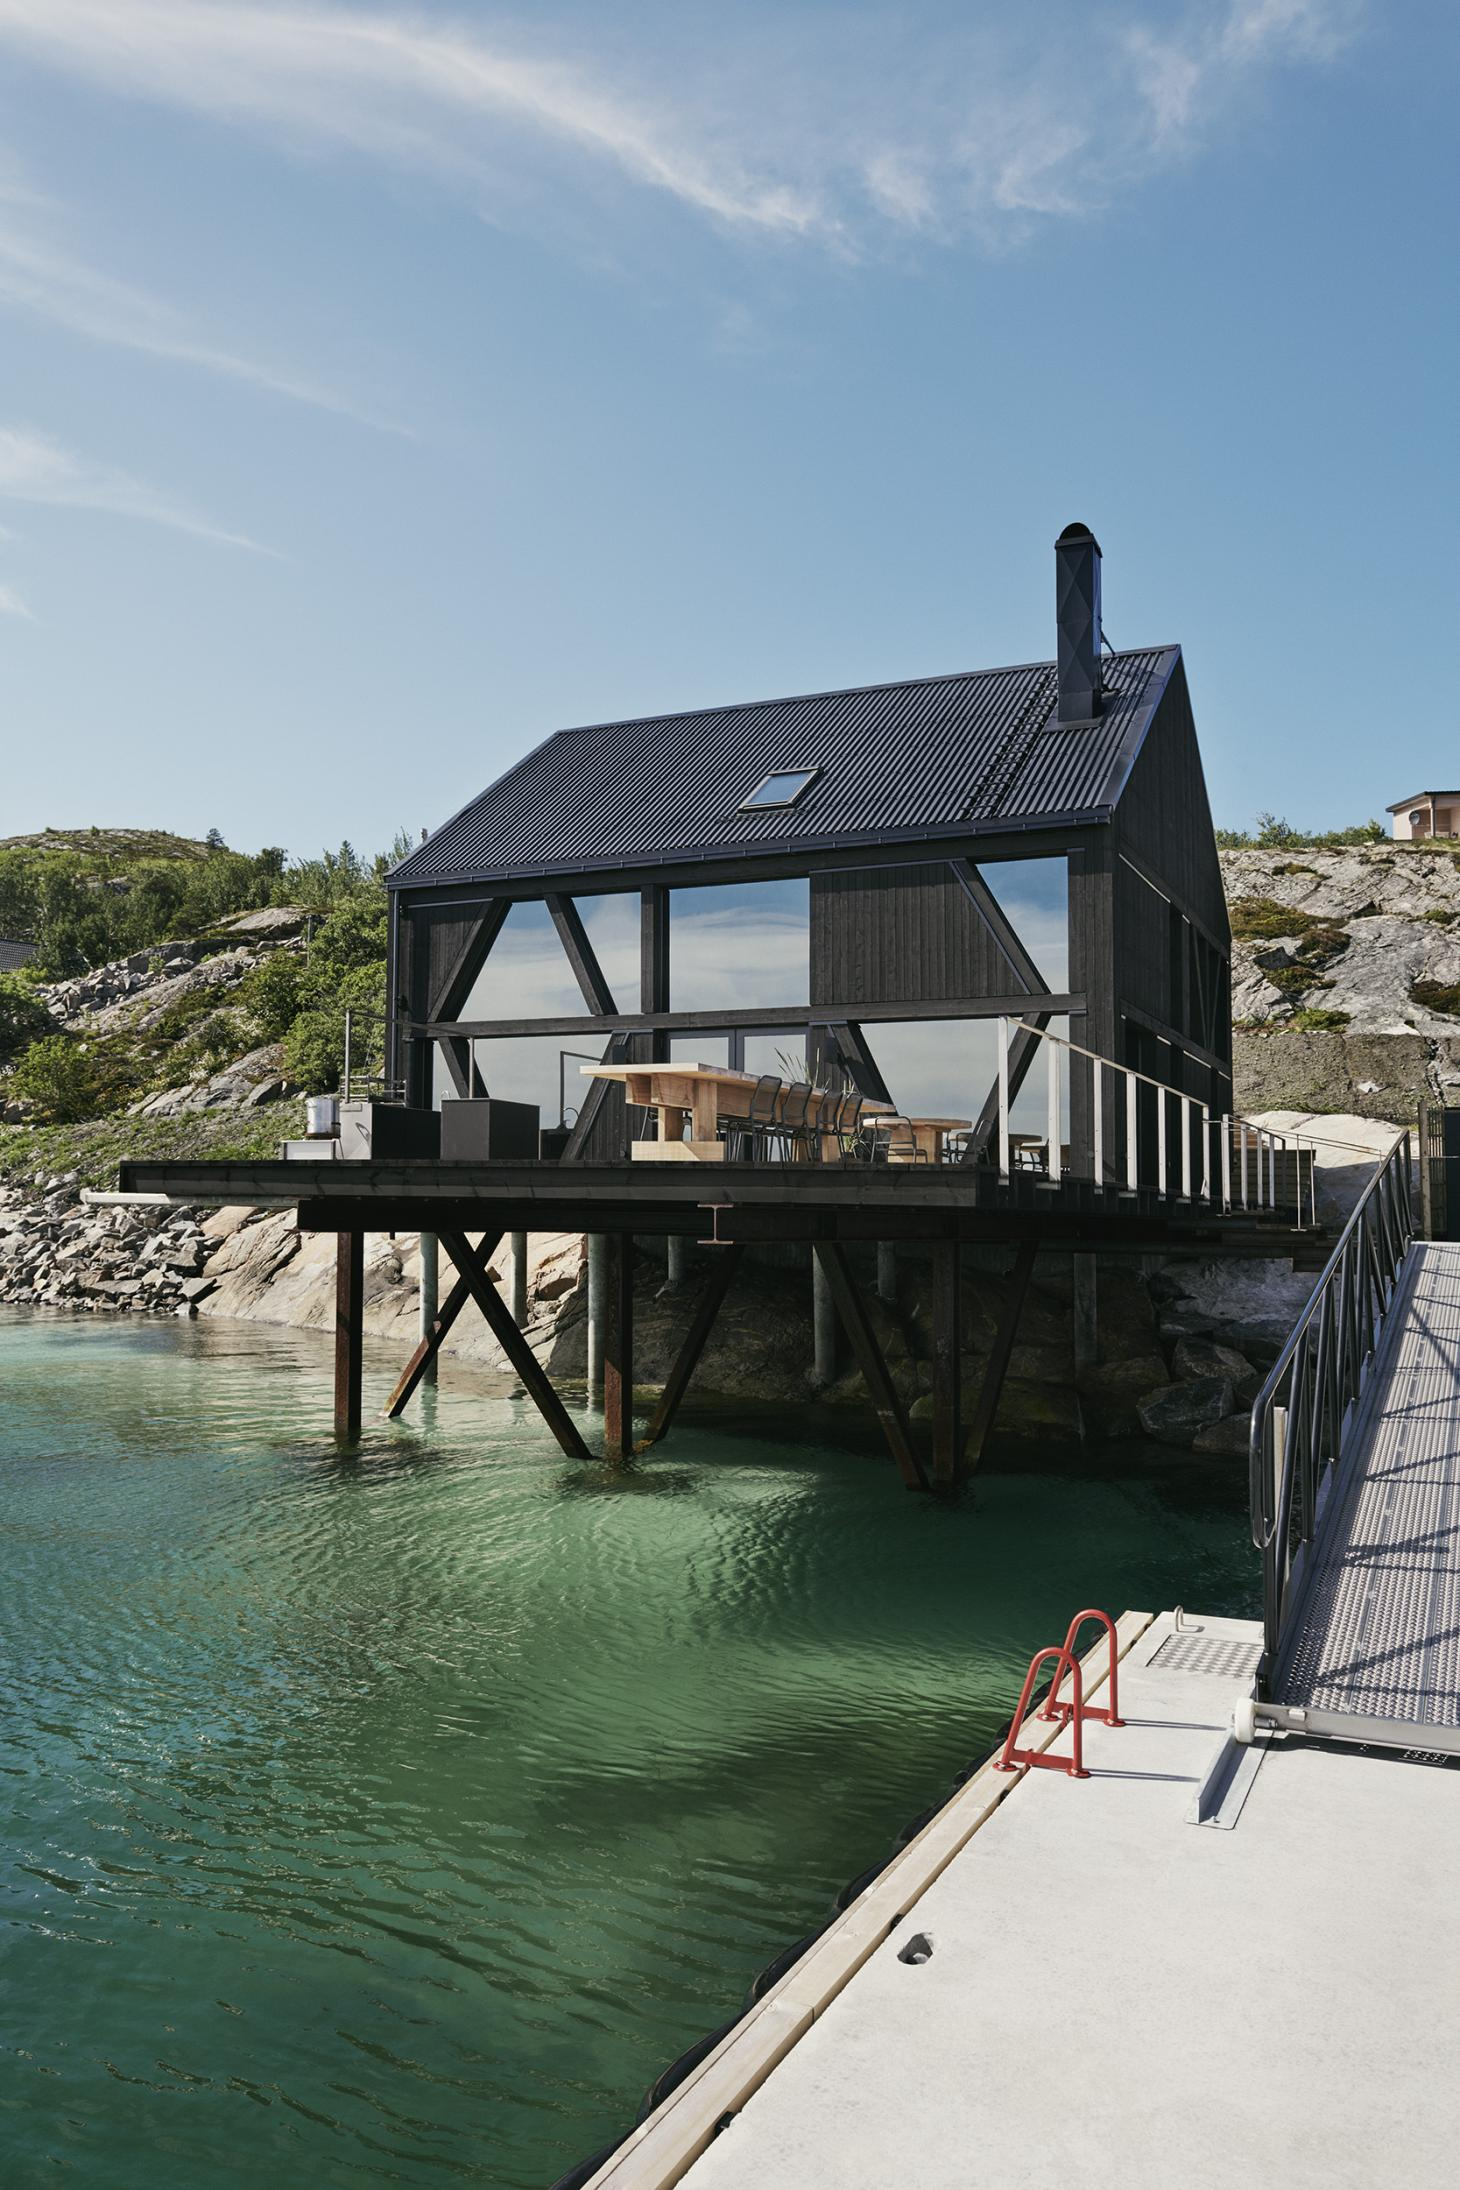 'Naustet' traditioanal Norwegian boat house